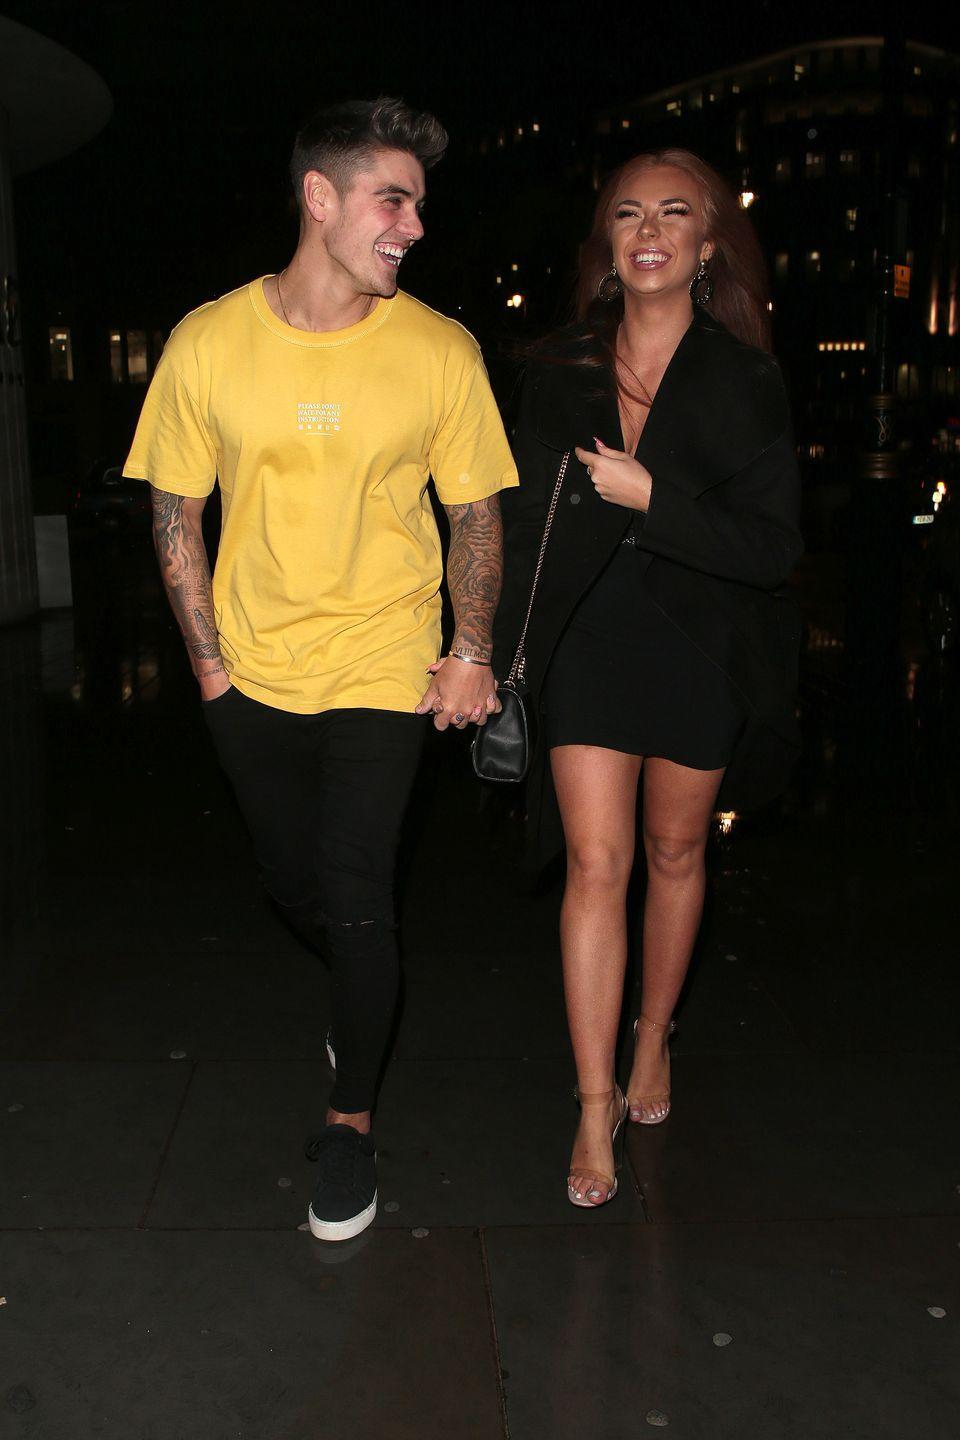 """<p><strong>Relationship status: Broken up / Mugged off</strong></p><p><a href=""""https://www.cosmopolitan.com/uk/entertainment/a32050067/love-island-luke-demi-still-together-quarantining/"""" rel=""""nofollow noopener"""" target=""""_blank"""" data-ylk=""""slk:Demi Jones and Luke Mabbott"""" class=""""link rapid-noclick-resp"""">Demi Jones and Luke Mabbott</a> split at the end of May after spending three months apart during the coronavirus lockdown, which is not an ideal situation for any couple.<br><br>A source told <a href=""""https://www.thesun.co.uk/tvandshowbiz/love-island/11738275/love-island-demi-luke-m-split/"""" rel=""""nofollow noopener"""" target=""""_blank"""" data-ylk=""""slk:The Sun Online"""" class=""""link rapid-noclick-resp"""">The Sun Online</a>, """"It's no huge drama - they're just better off as friends. They had a good run but they have split for good.""""<br><br>The source continued, """"There's been no cheating or drama they just drifted apart - he's looking forward to lockdown being over and making the most of his new single status.""""</p>"""